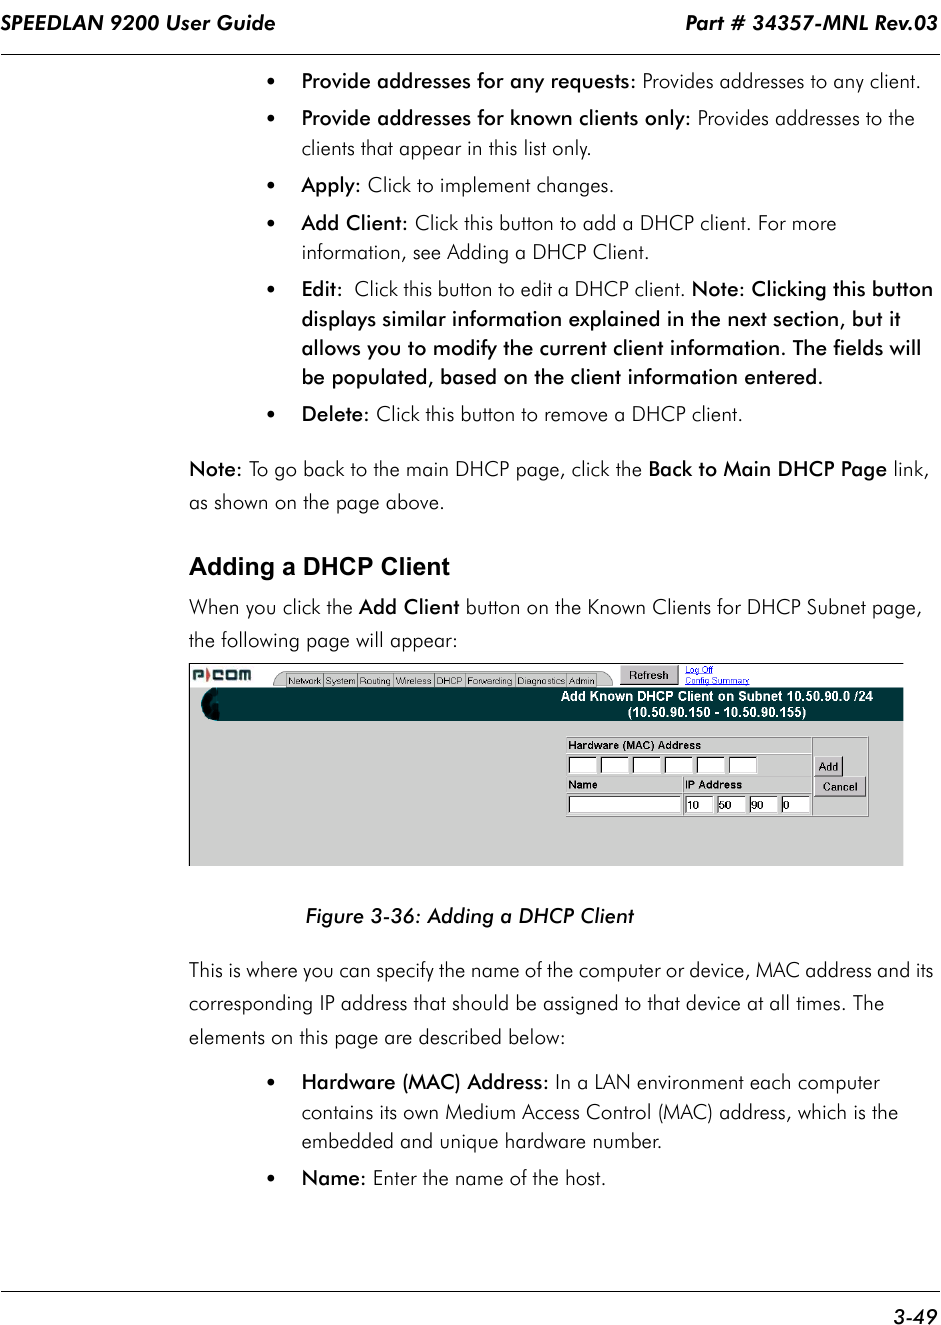 SPEEDLAN 9200 User Guide                                                                    Part # 34357-MNL Rev.03      3-49                                                                                                                                                              •Provide addresses for any requests: Provides addresses to any client.•Provide addresses for known clients only: Provides addresses to the clients that appear in this list only. •Apply: Click to implement changes.•Add Client: Click this button to add a DHCP client. For more information, see Adding a DHCP Client.•Edit:        Click this button to edit a DHCP client. Note: Clicking this button displays similar information explained in the next section, but it allows you to modify the current client information. The fields will be populated, based on the client information entered.•Delete: Click this button to remove a DHCP client.Note: To go back to the main DHCP page, click the Back to Main DHCP Page    link, as shown on the page above.Adding a DHCP ClientWhen you click the Add Client button on the Known Clients for DHCP Subnet page,  the following page will appear:Figure 3-36: Adding a DHCP ClientThis is where you can specify the name of the computer or device, MAC address and its corresponding IP address that should be assigned to that device at all times. The elements on this page are described below:•Hardware (MAC) Address: In a LAN environment each computer contains its own Medium Access Control (MAC) address, which is the embedded and unique hardware number.  •Name: Enter the name of the host.